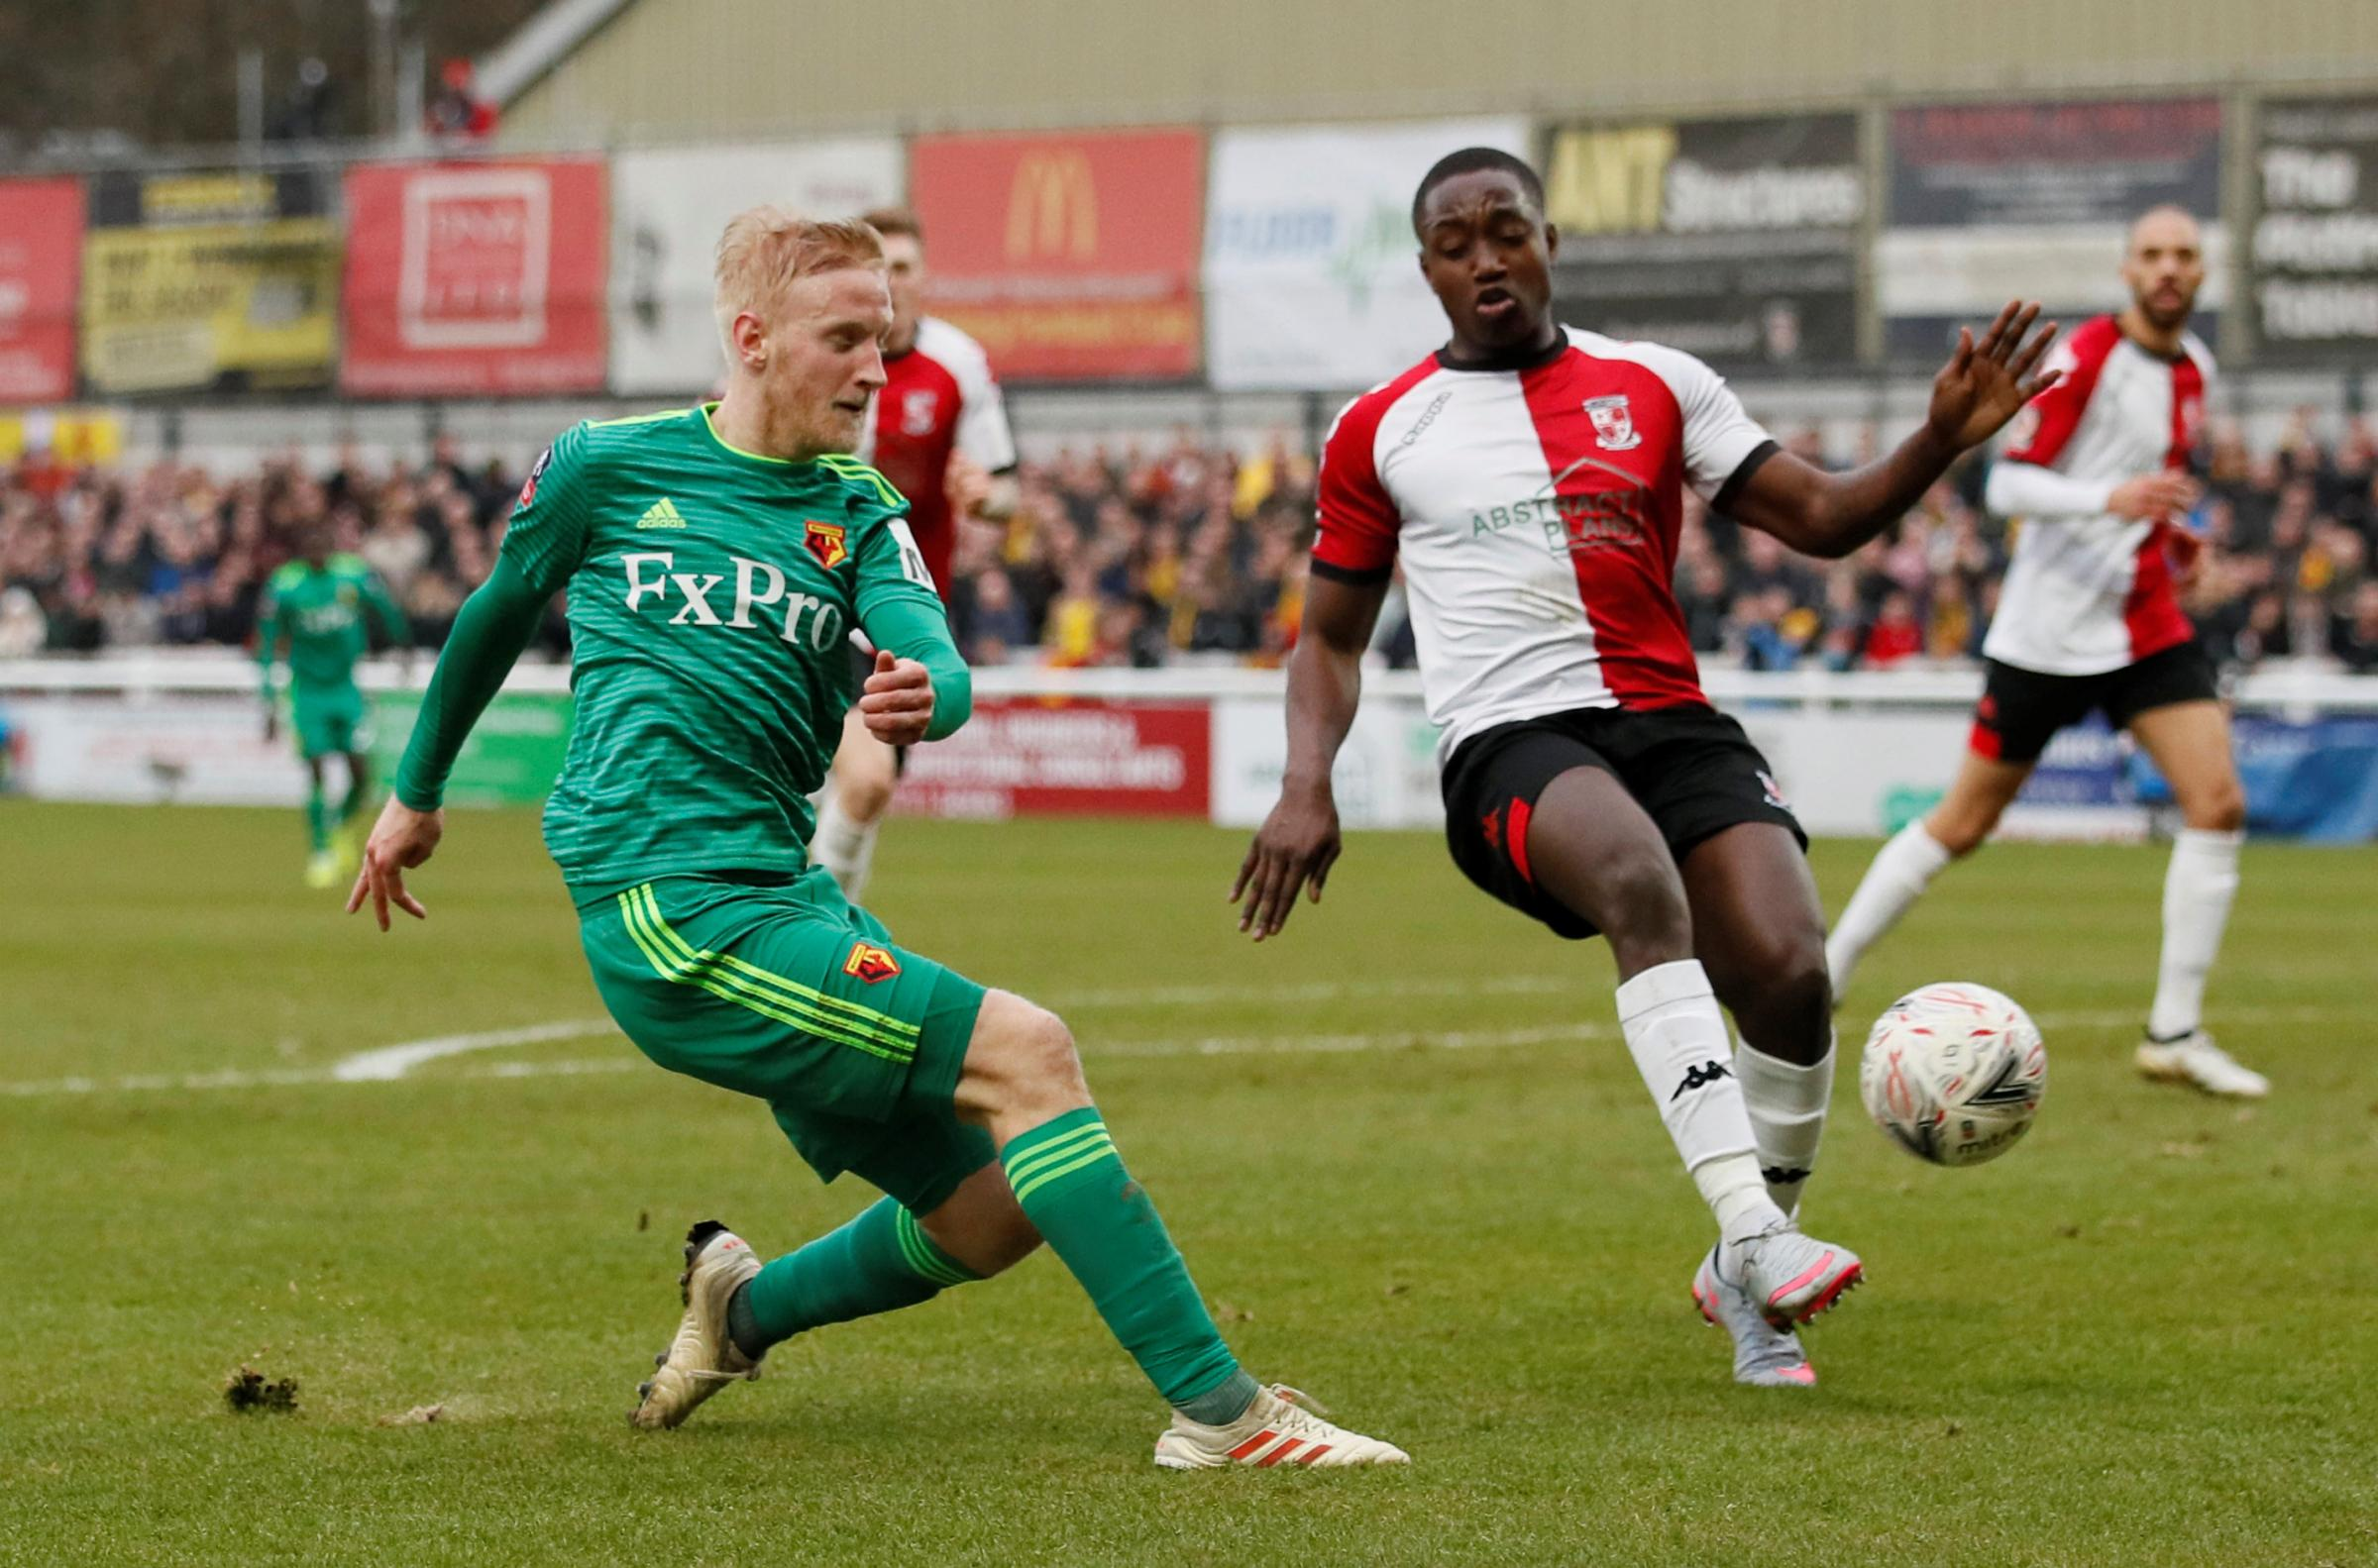 Will Hughes shone against Woking in the FA Cup. Picture: Action Images